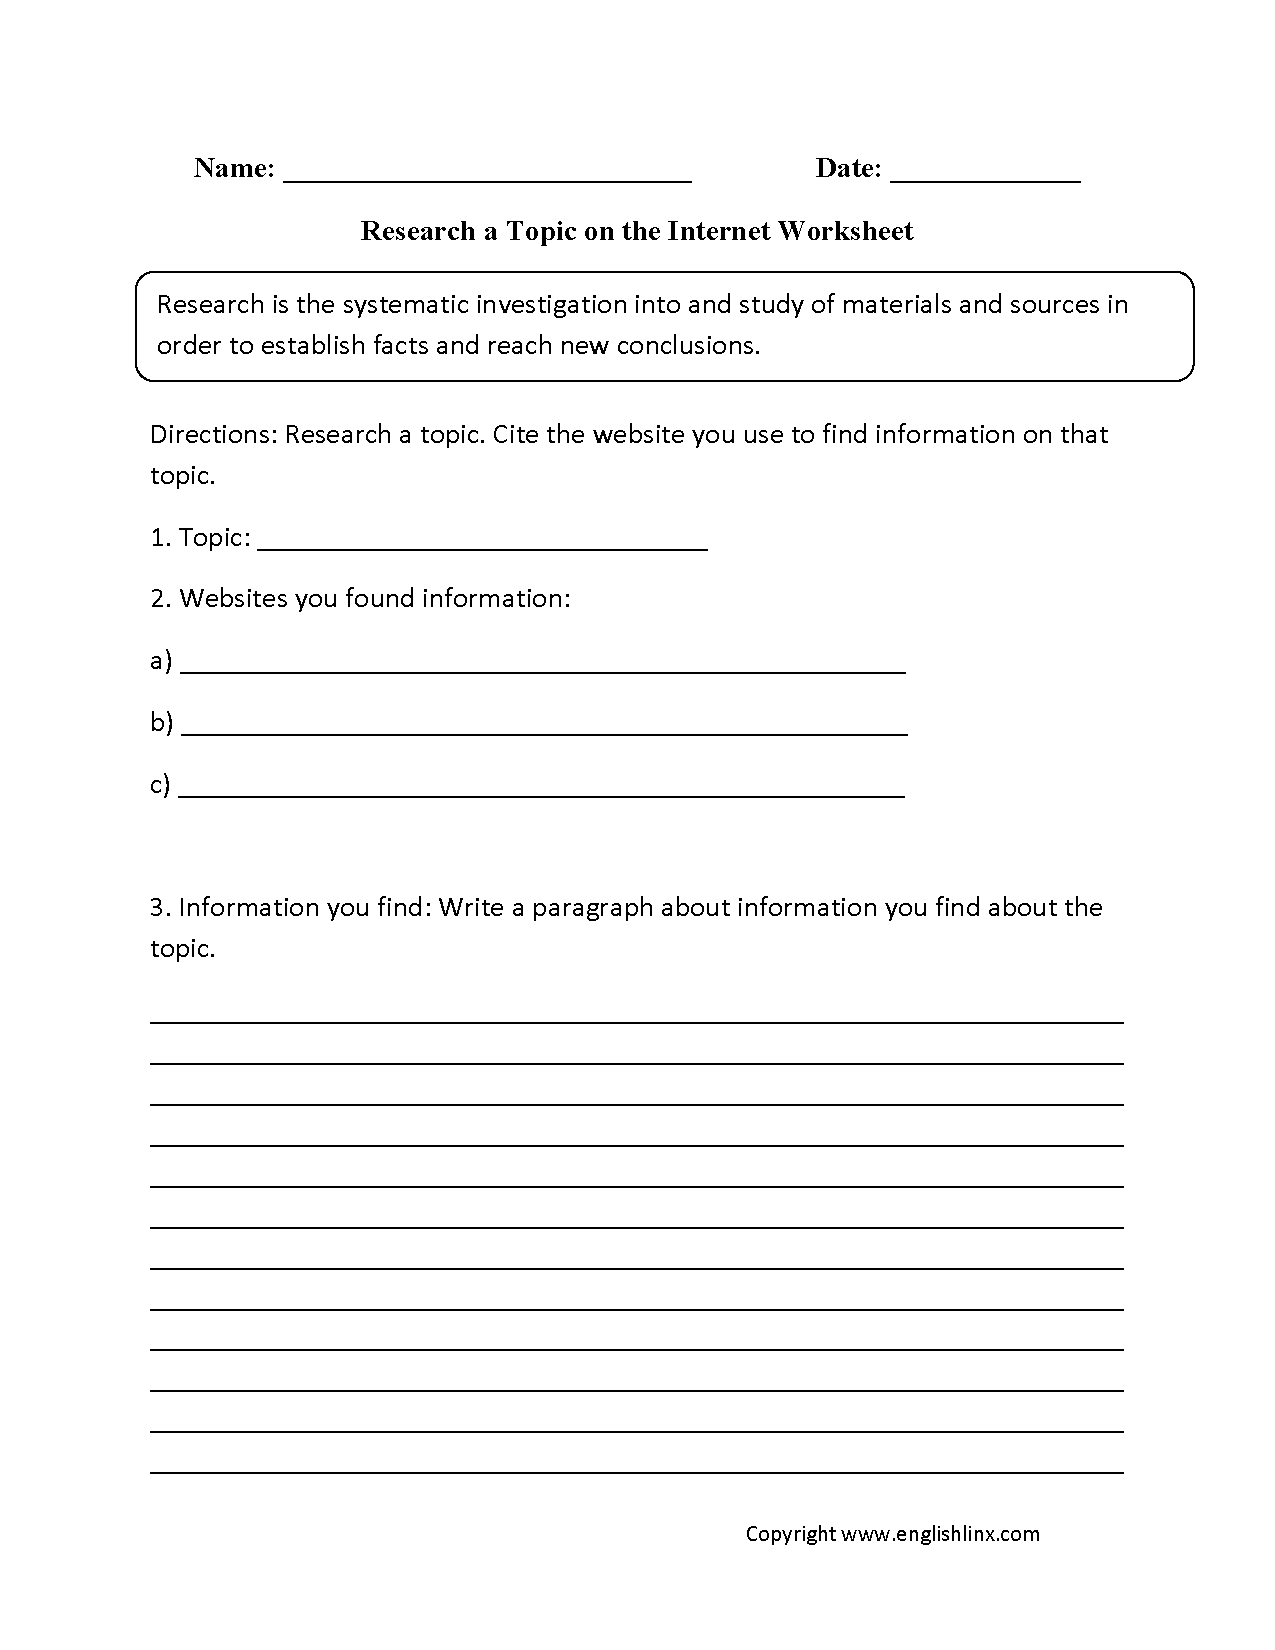 Aldiablosus  Ravishing Englishlinxcom  Research Worksheets With Fair On The Internet Worksheet With Archaic Invertebrate Worksheets Also Standard Form Equation Worksheet In Addition Scientific Inquiry Worksheets And Fun Th Grade Worksheets As Well As Fall Coloring Worksheets Additionally Context Clues Worksheets St Grade From Englishlinxcom With Aldiablosus  Fair Englishlinxcom  Research Worksheets With Archaic On The Internet Worksheet And Ravishing Invertebrate Worksheets Also Standard Form Equation Worksheet In Addition Scientific Inquiry Worksheets From Englishlinxcom